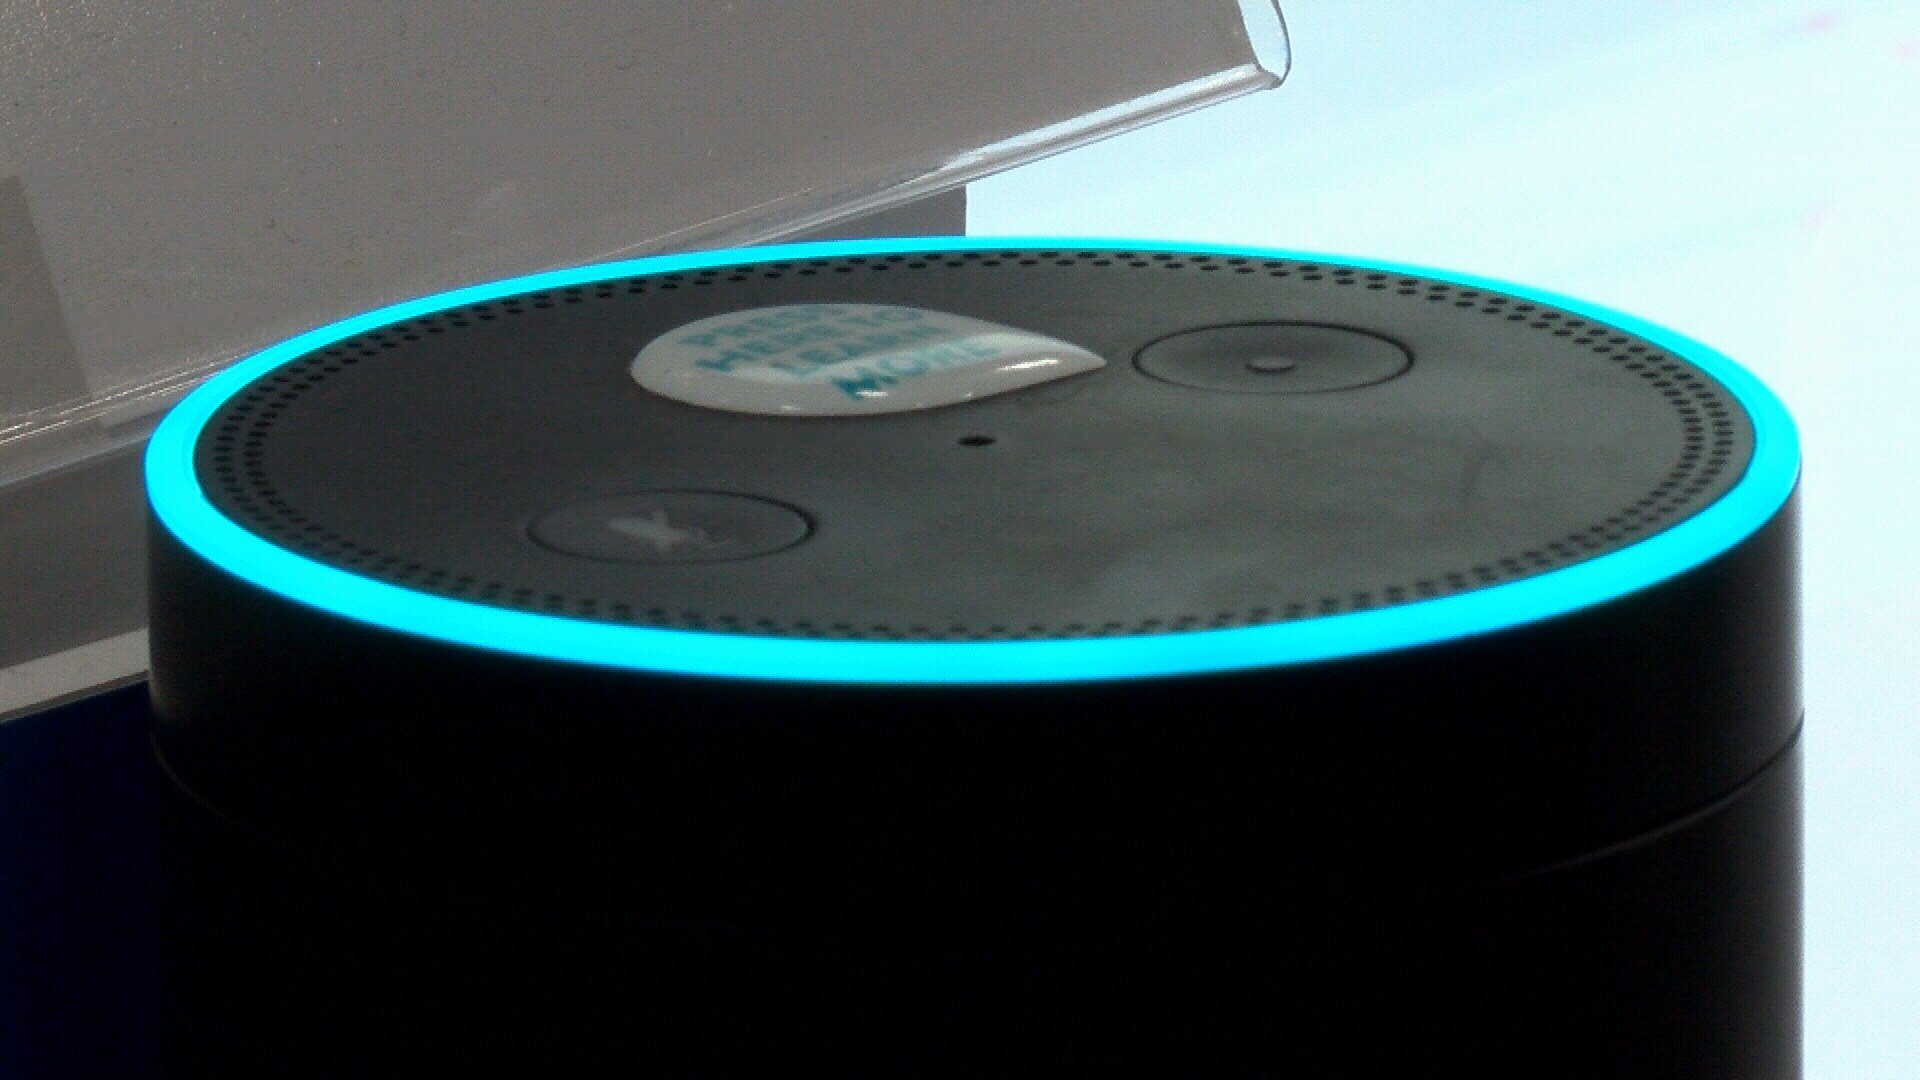 An Amazon Echo device on display at Best Buy. (KSBY photo)